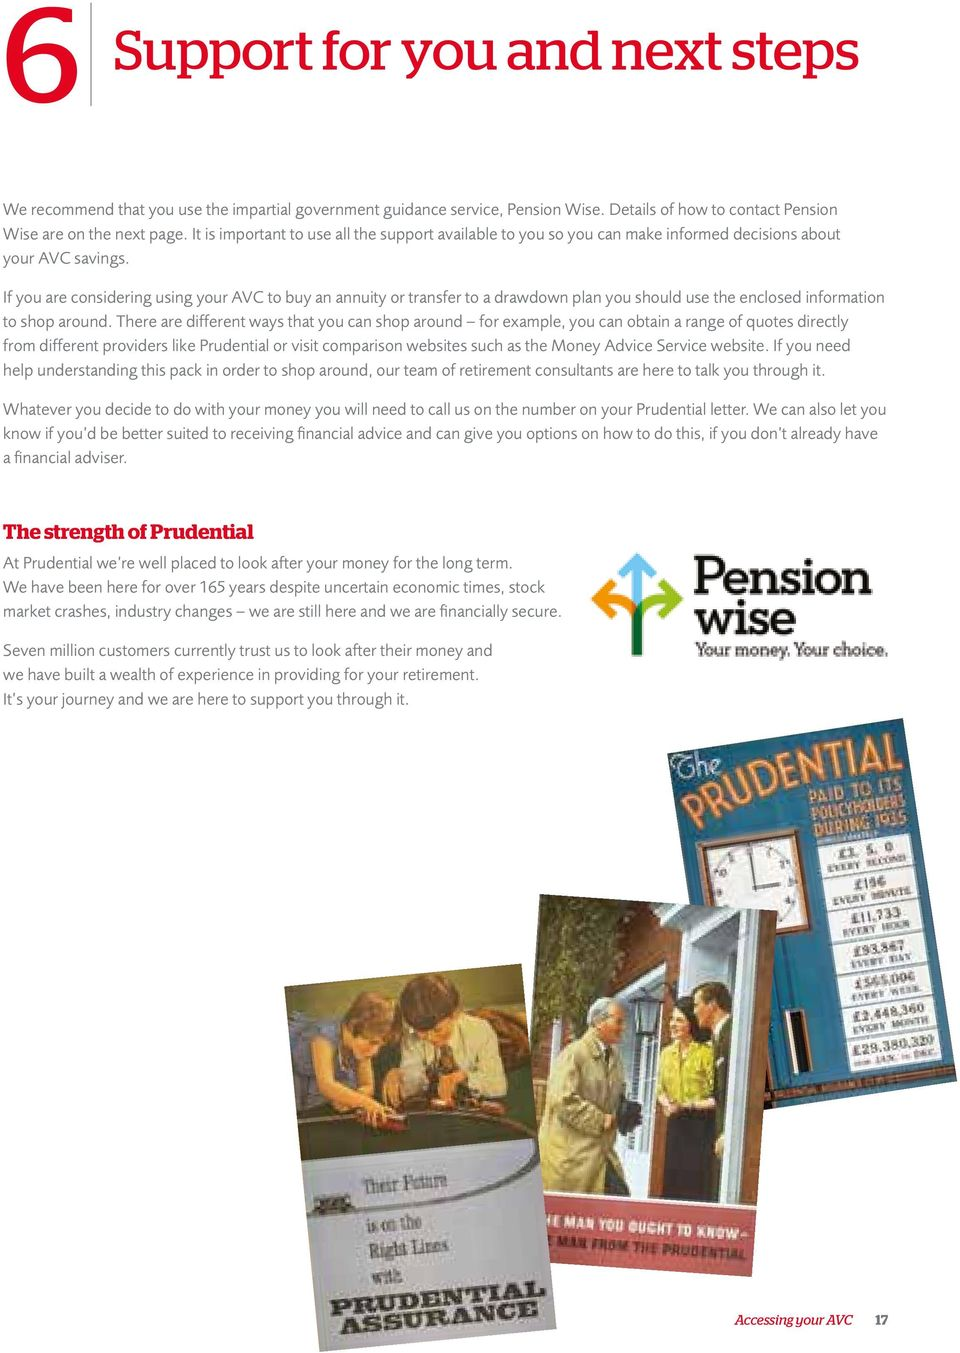 If you are considering using your AVC to buy an annuity or transfer to a drawdown plan you should use the enclosed information to shop around.